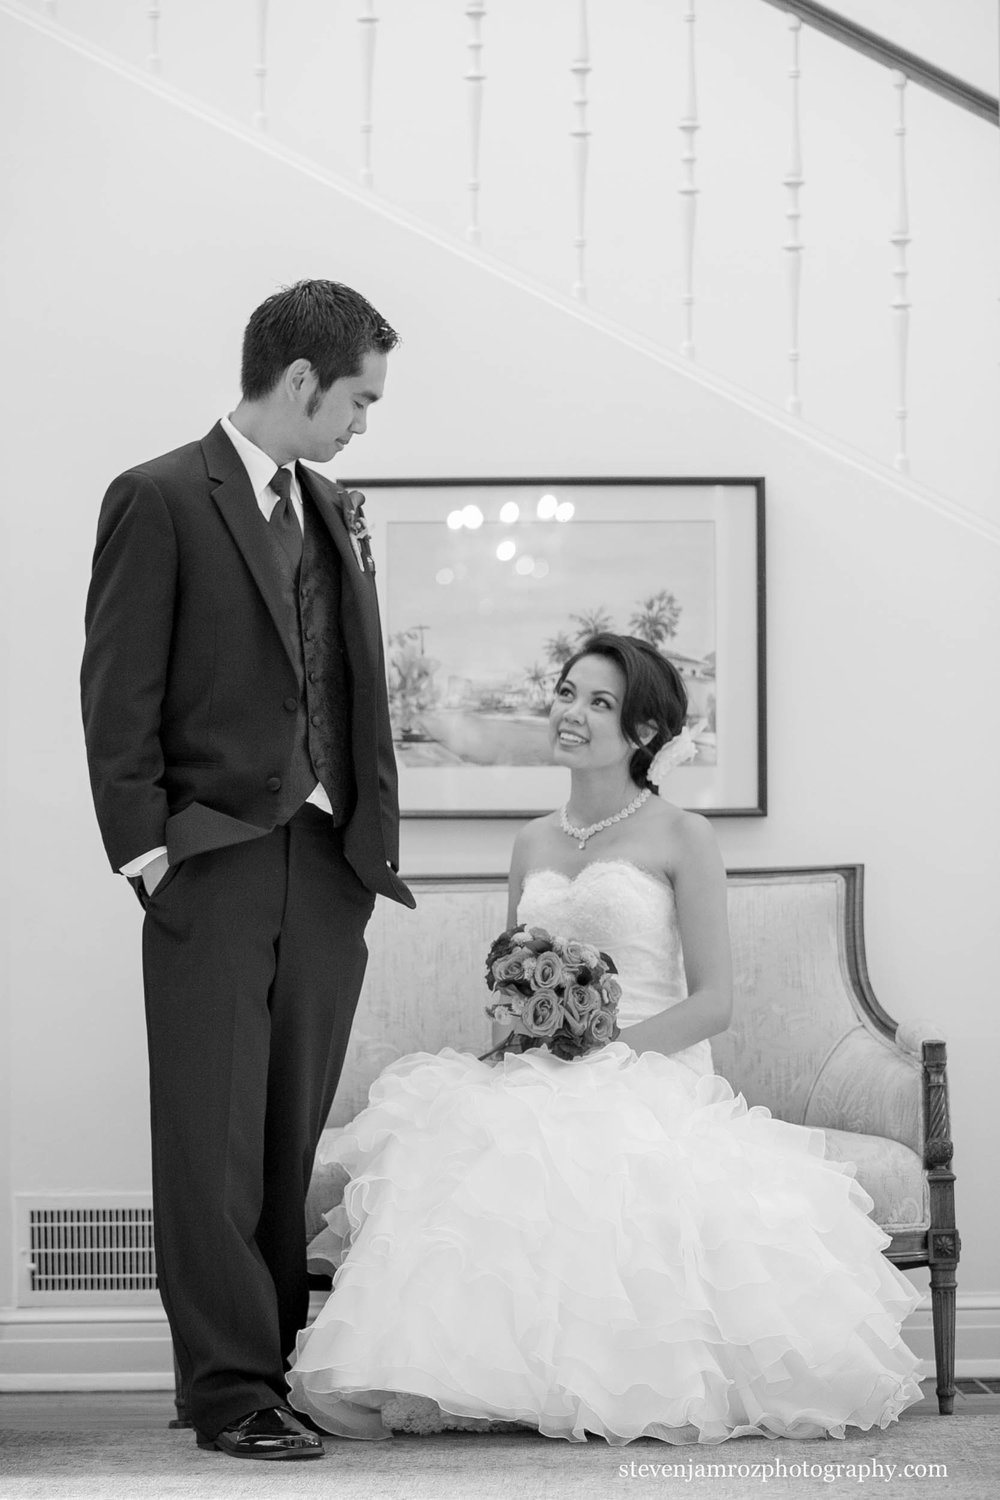 pretty-dress-groom-wedding-in-raleigh-steven-jamroz-photography-0234.jpg